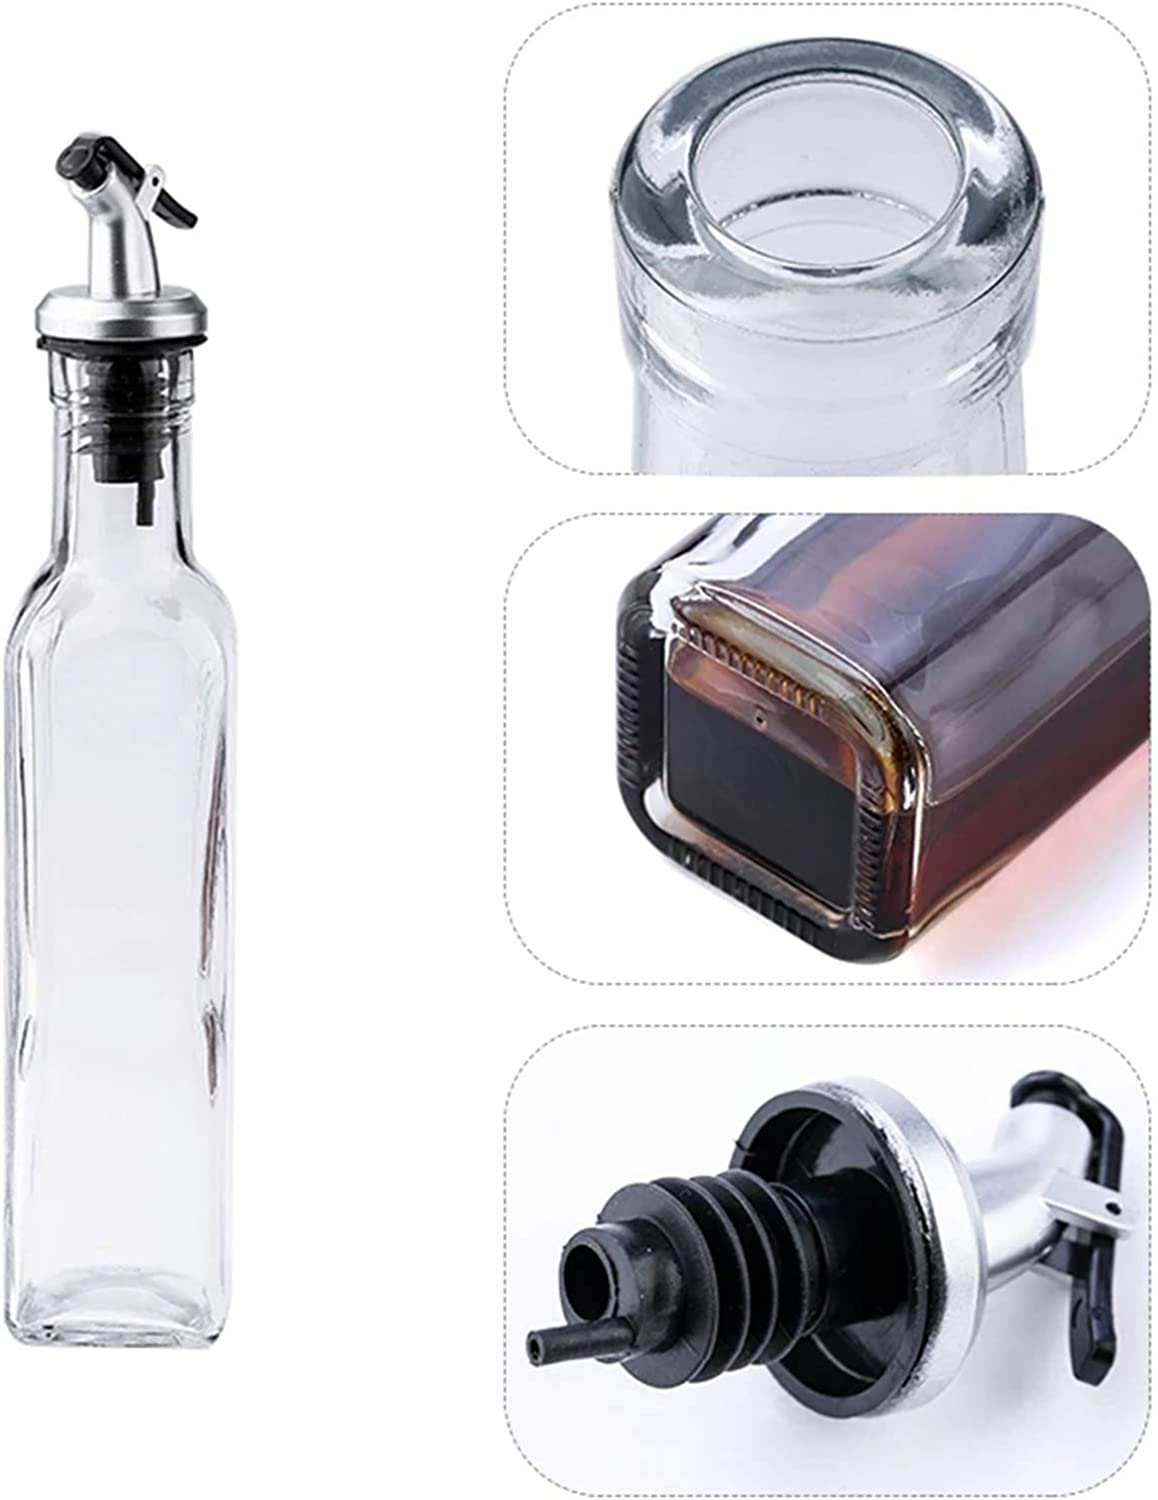 2 Pack Cruet Set with Stainless Steel Pouring Spouts Olive Oil and Vinegar Dispenser Bottles 17 Oz Clear Glass Olive Oil Dispenser